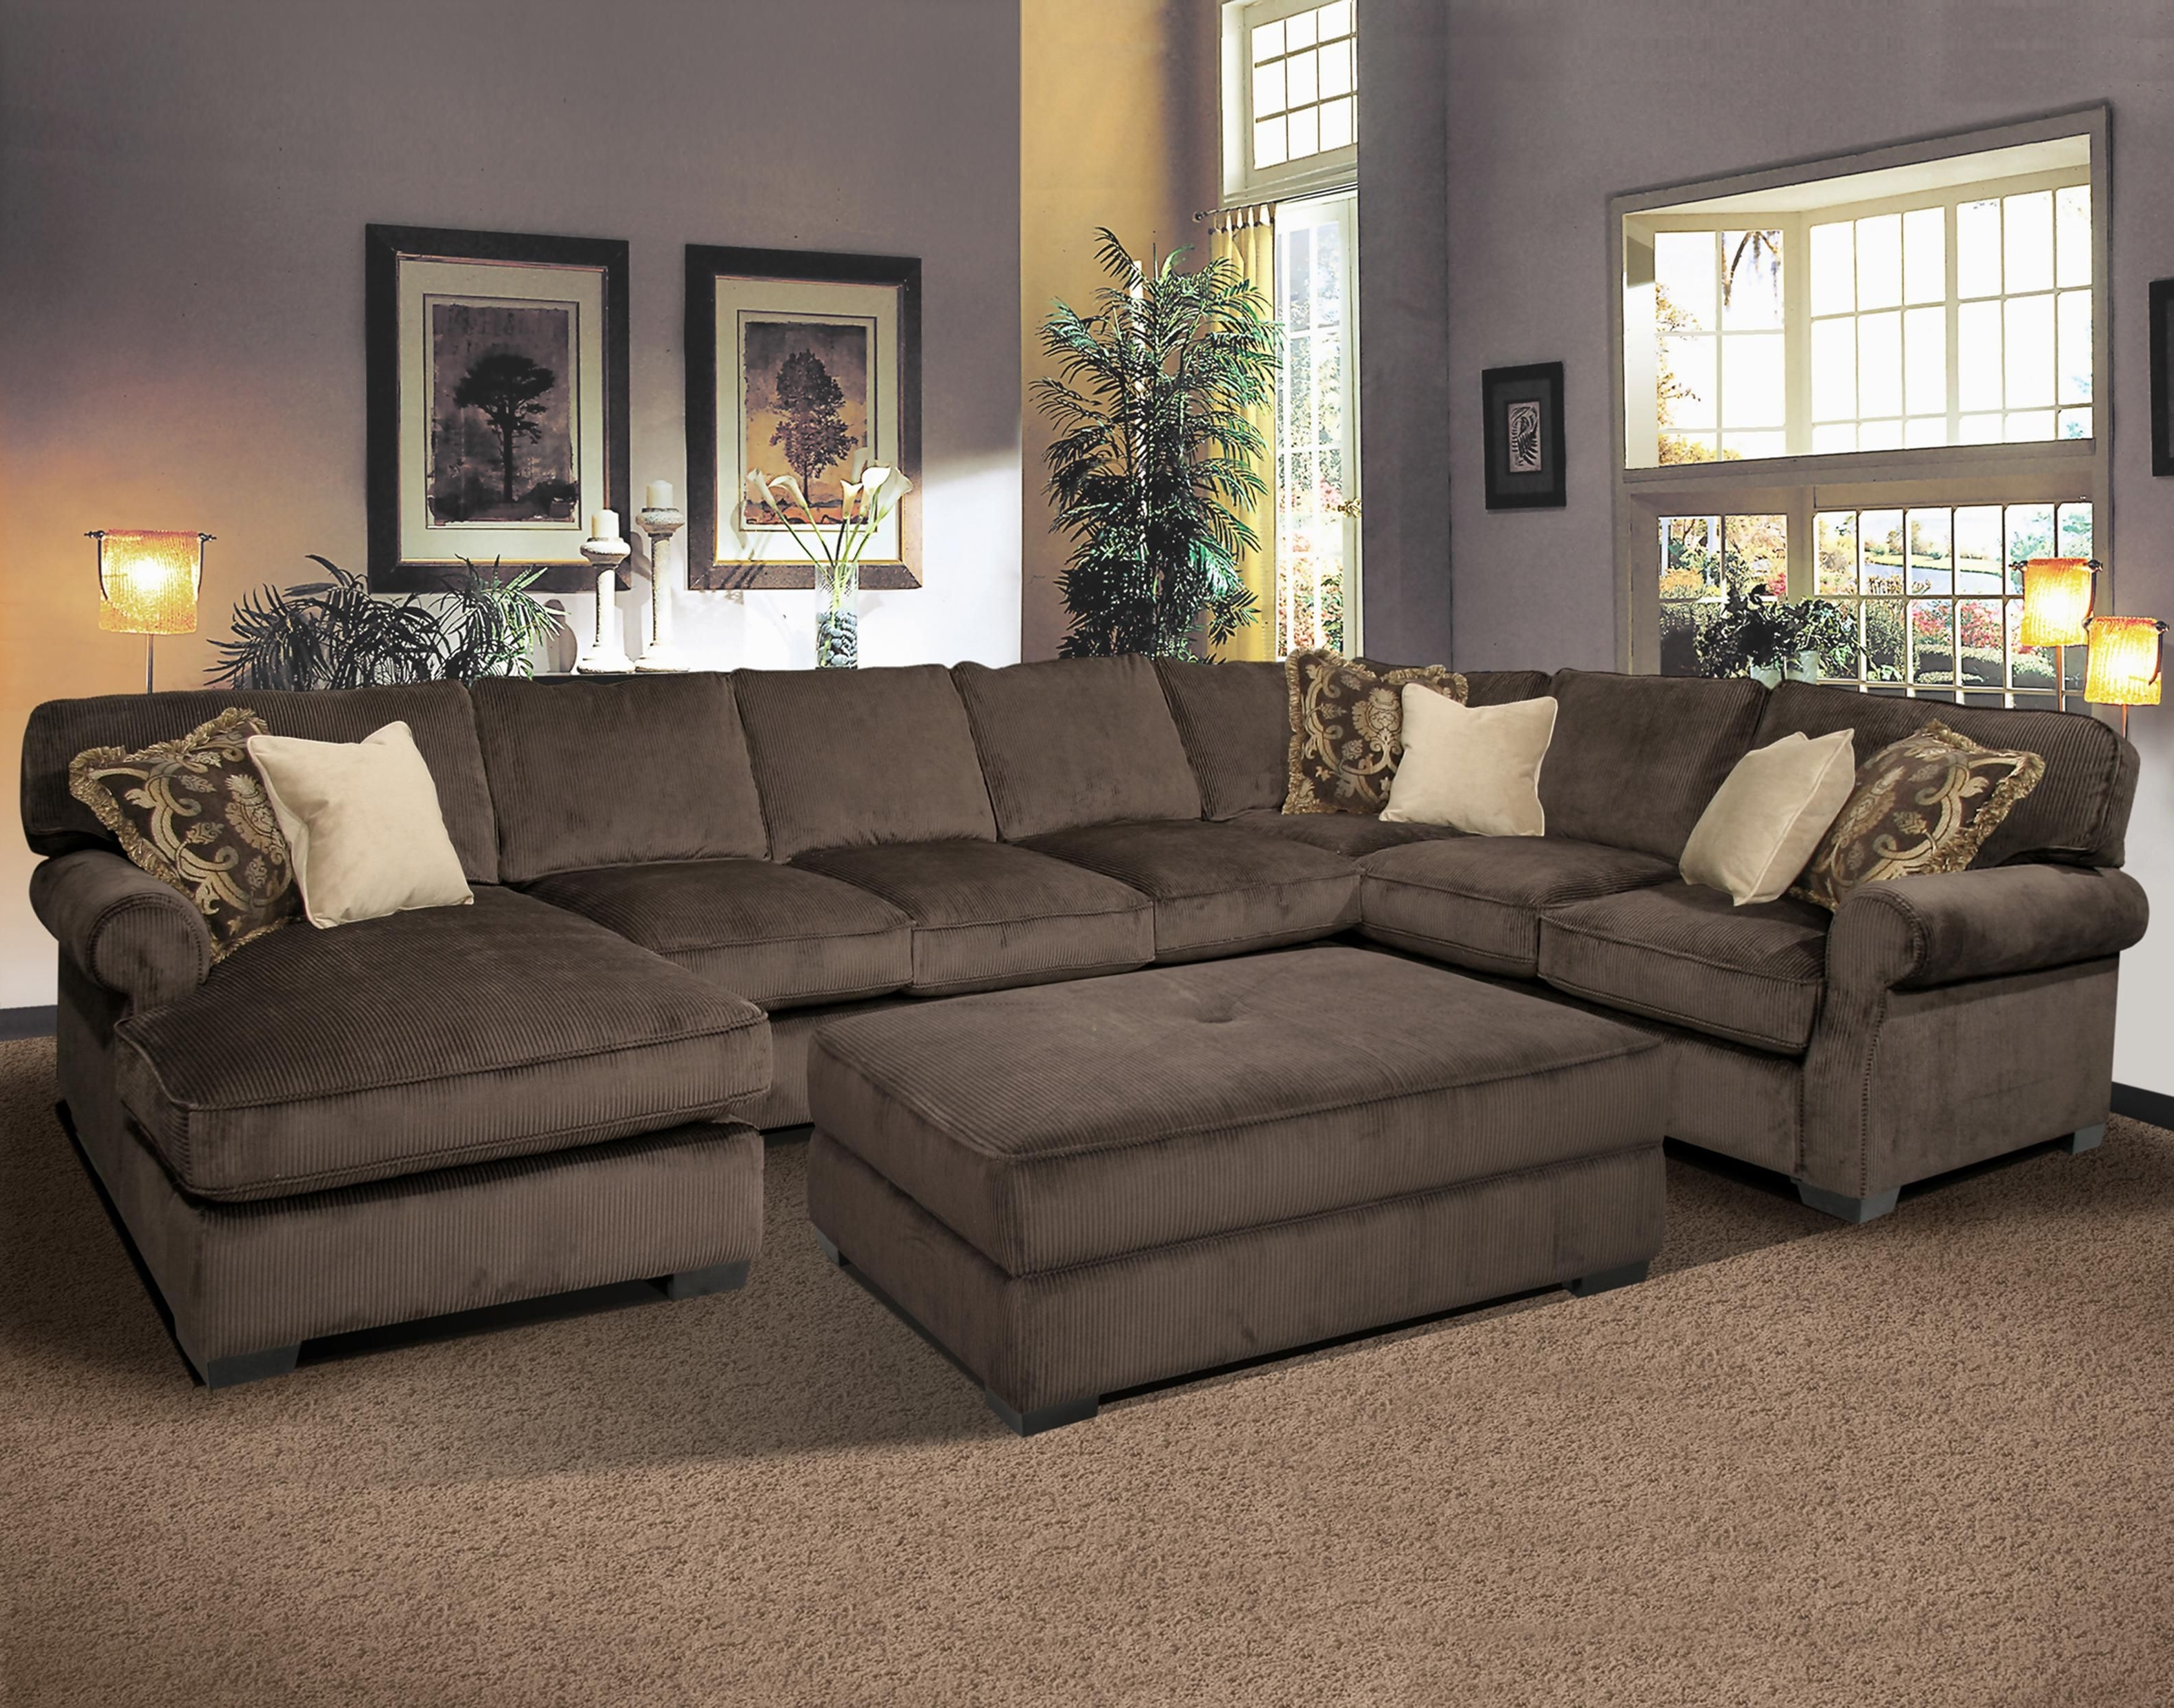 Vancouver Sectional Sofas With Latest Big And Comfy Grand Island Large, 7 Seat Sectional Sofa With Right (View 13 of 15)